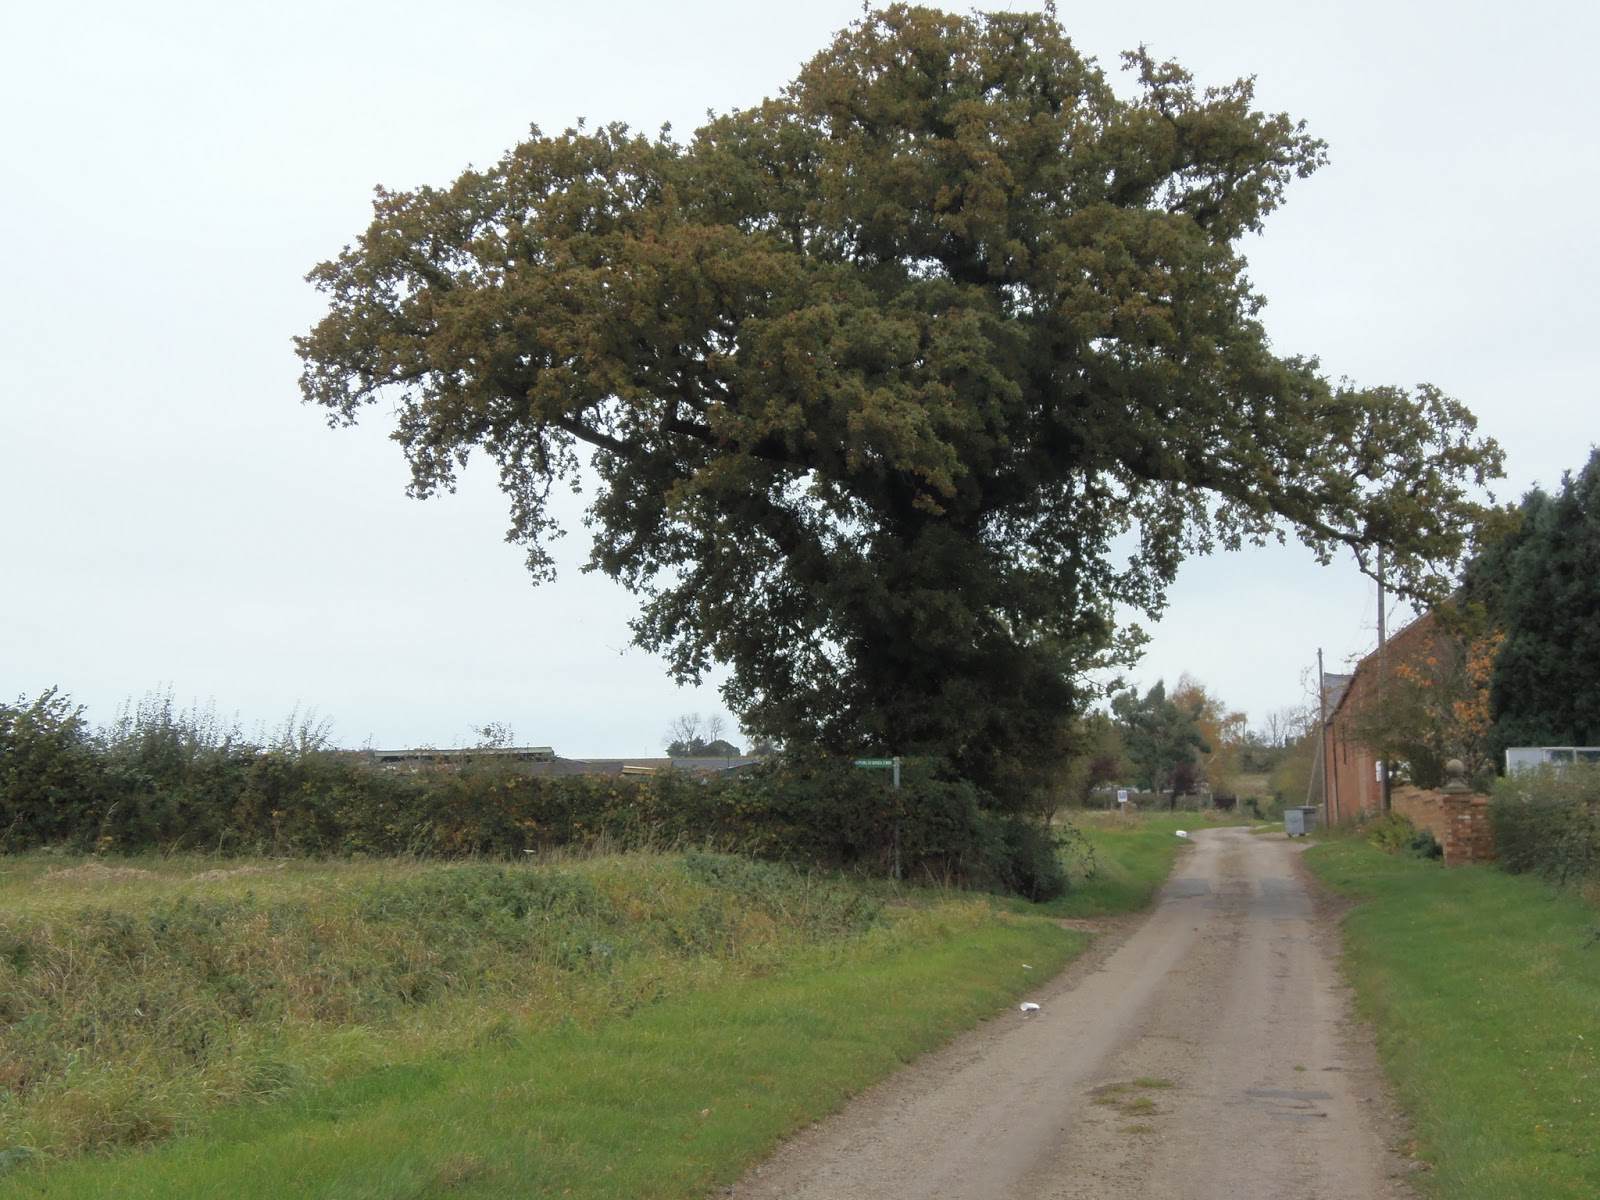 Another Oak